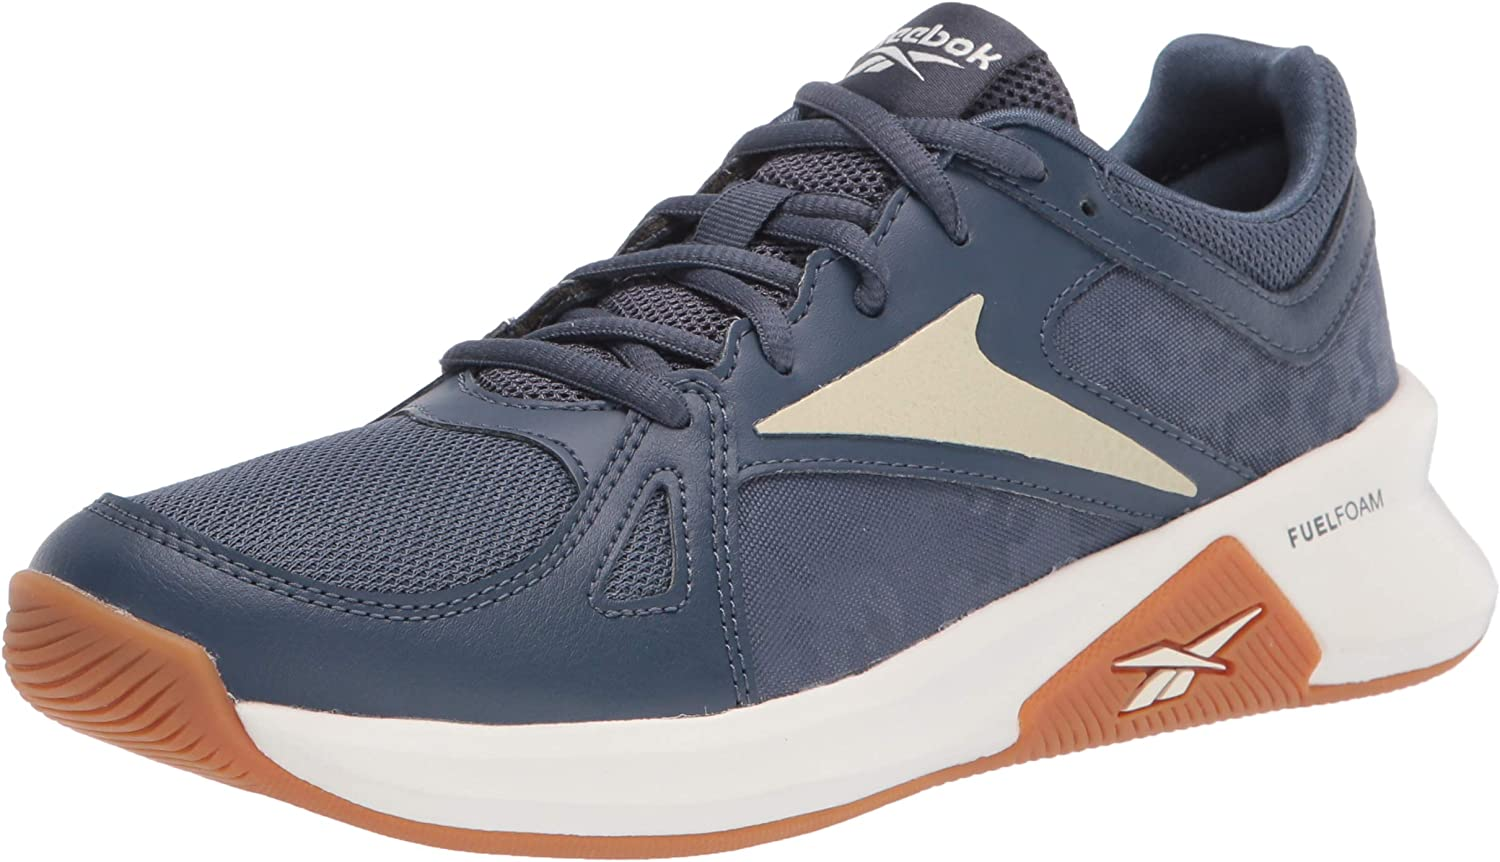 Special sale item Reebok Popular product Women's Advanced Trainette Training Shoes Cross Trainer